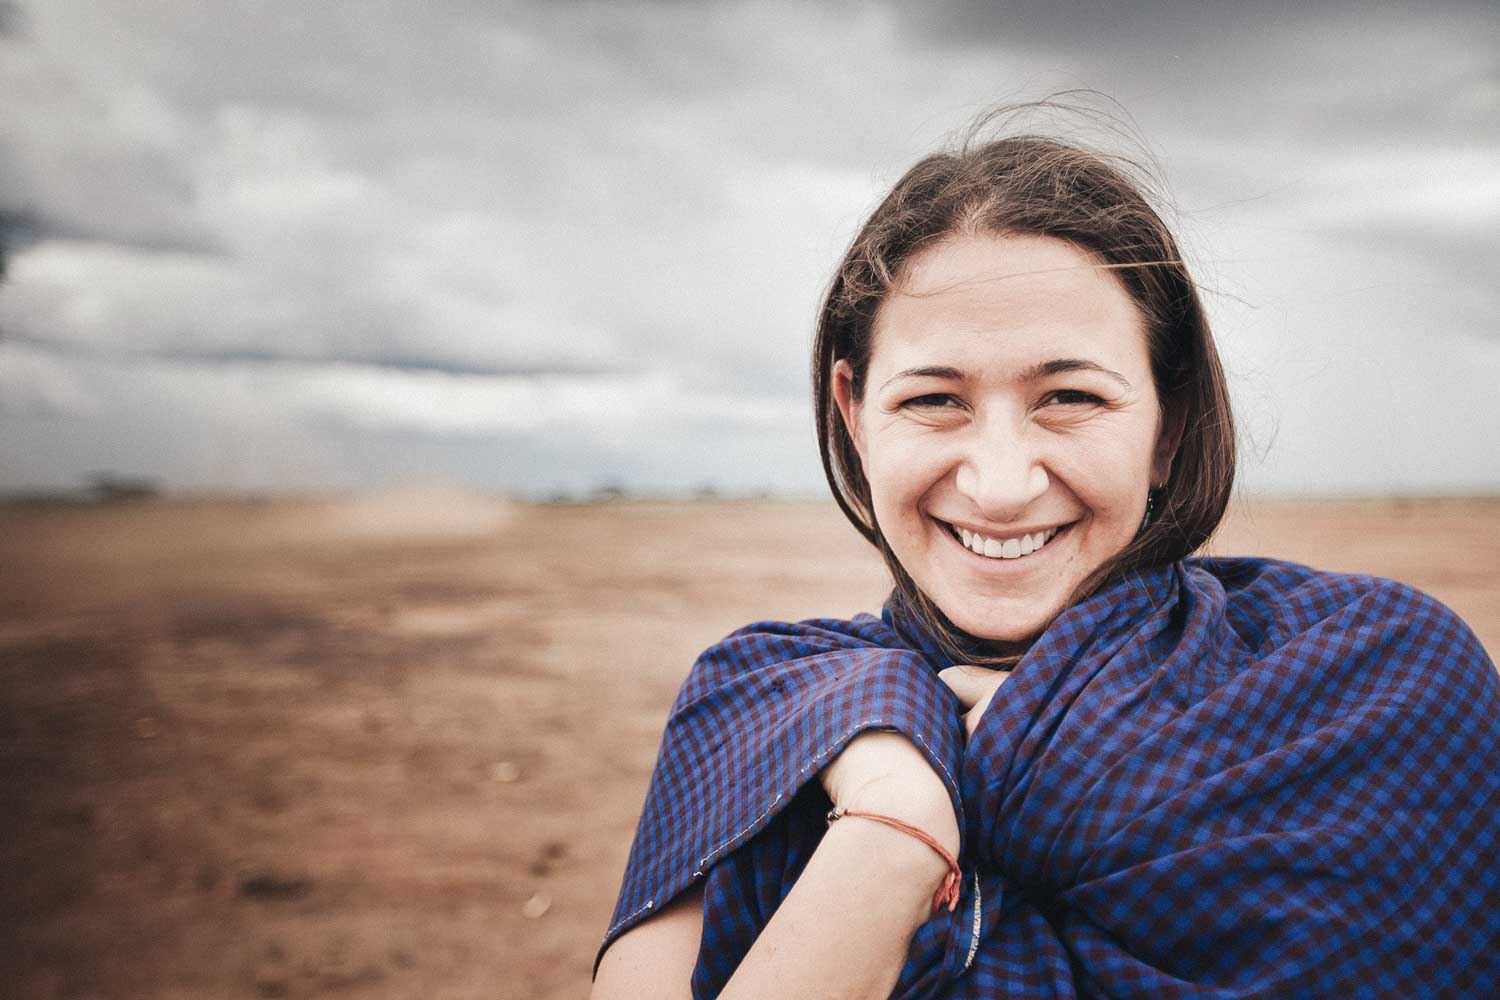 Paige Elenson of Africa Yoga Project in Nairobi